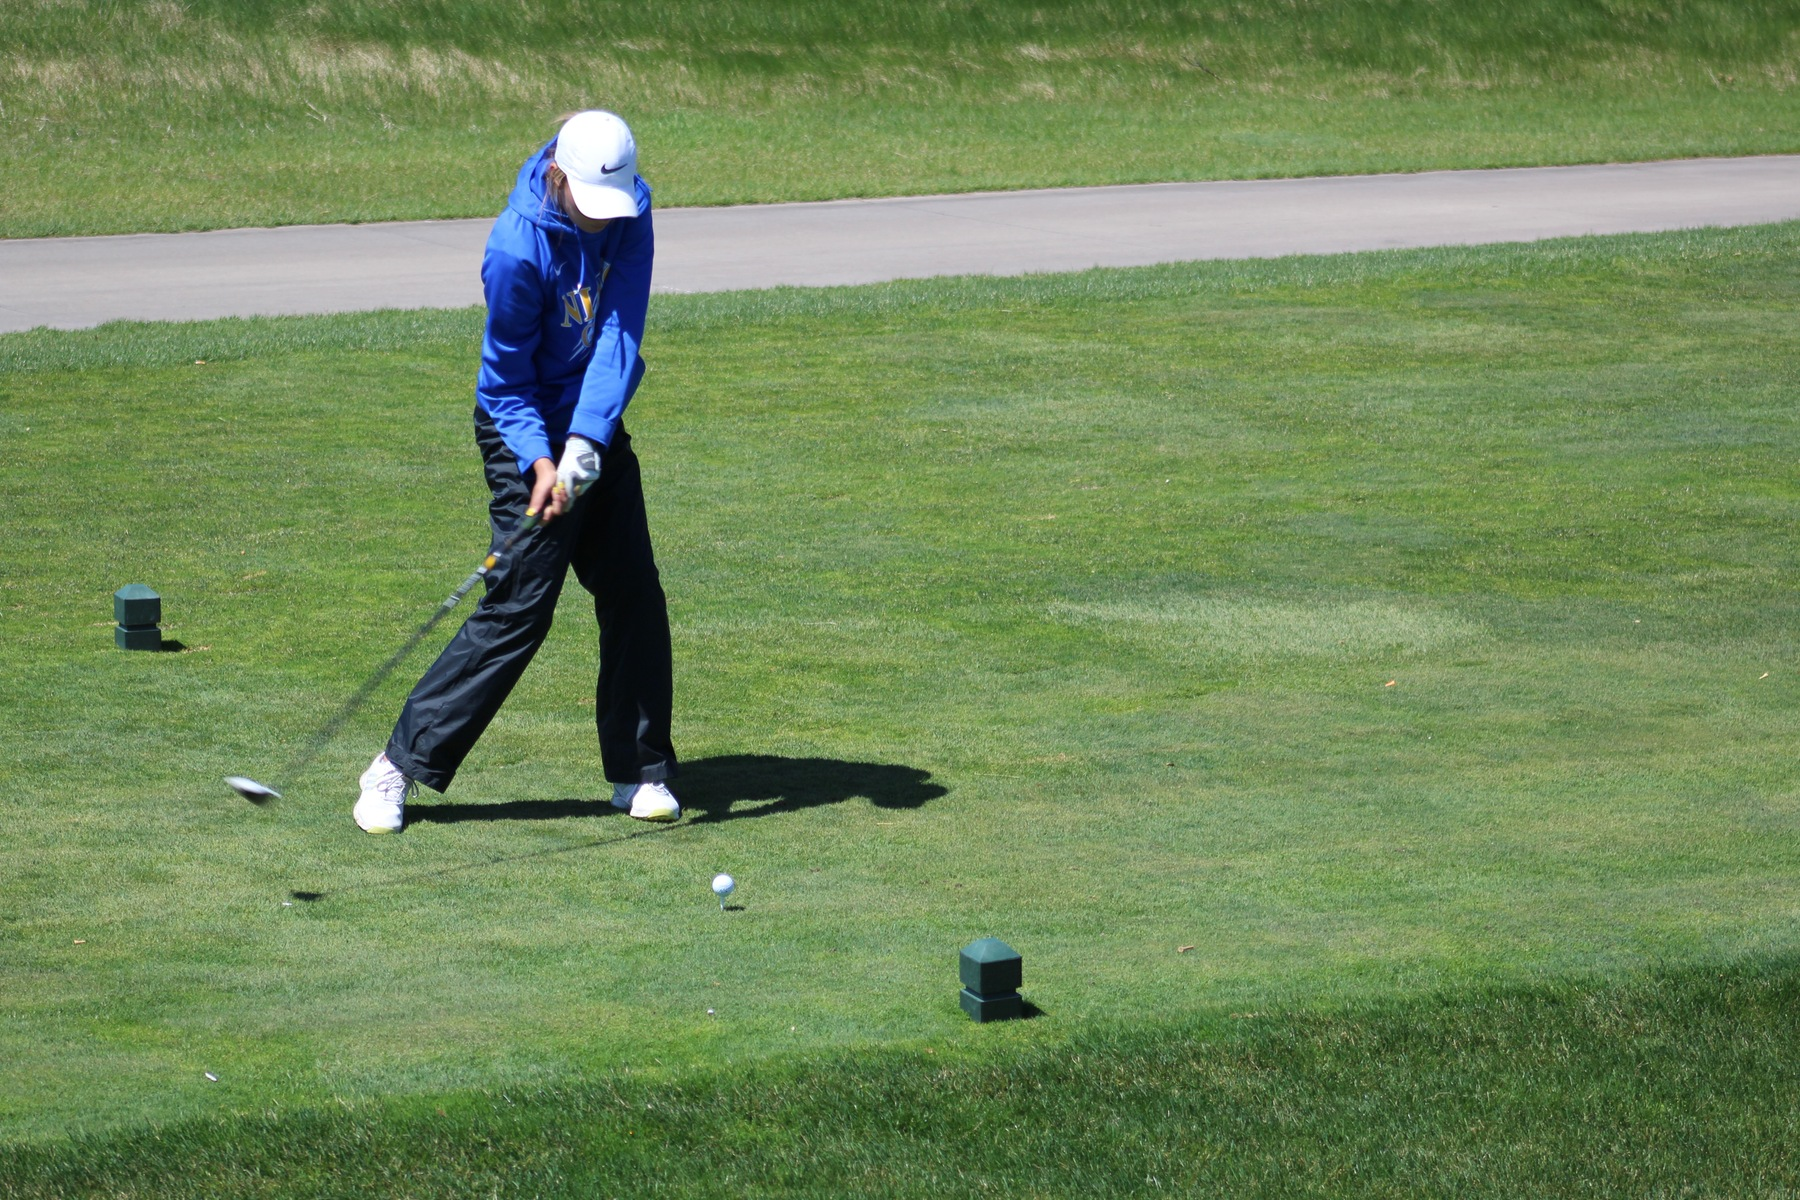 NIACC freshman Jordyn Barragy tees off during Friday's round at the regional golf tournament Friday at Otter Creek Golf Course in Ankeny.